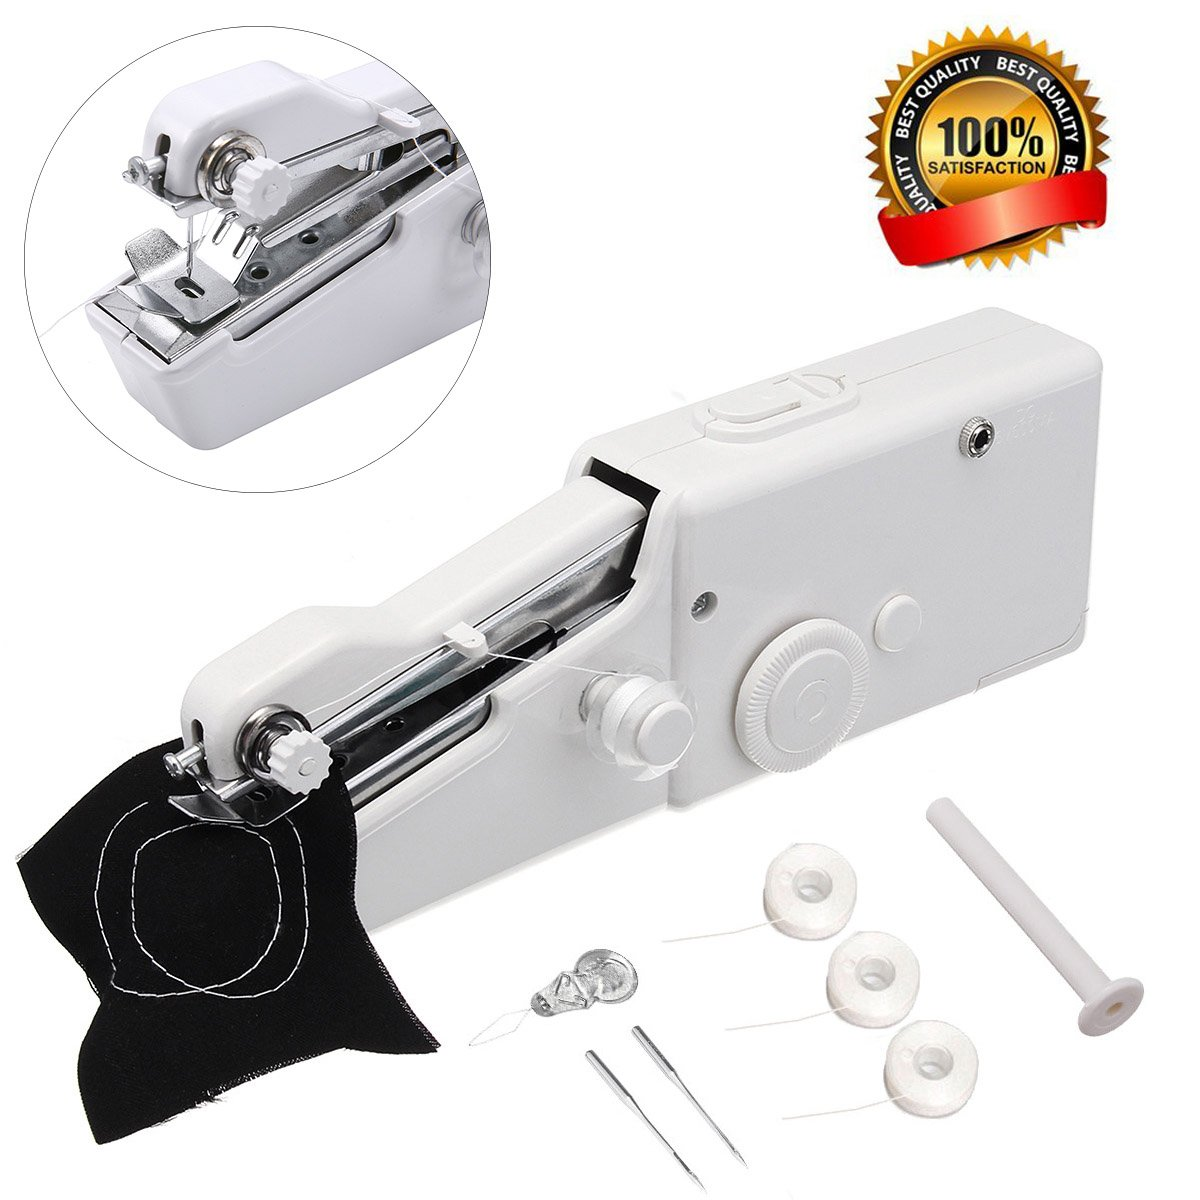 MSDADA Mini Portable sewing machine,Professional Sewing Handheld Electric Household Tool for Fabric, Clothing, Kids Cloth, Home Travel Use Master-Ed 4336999801